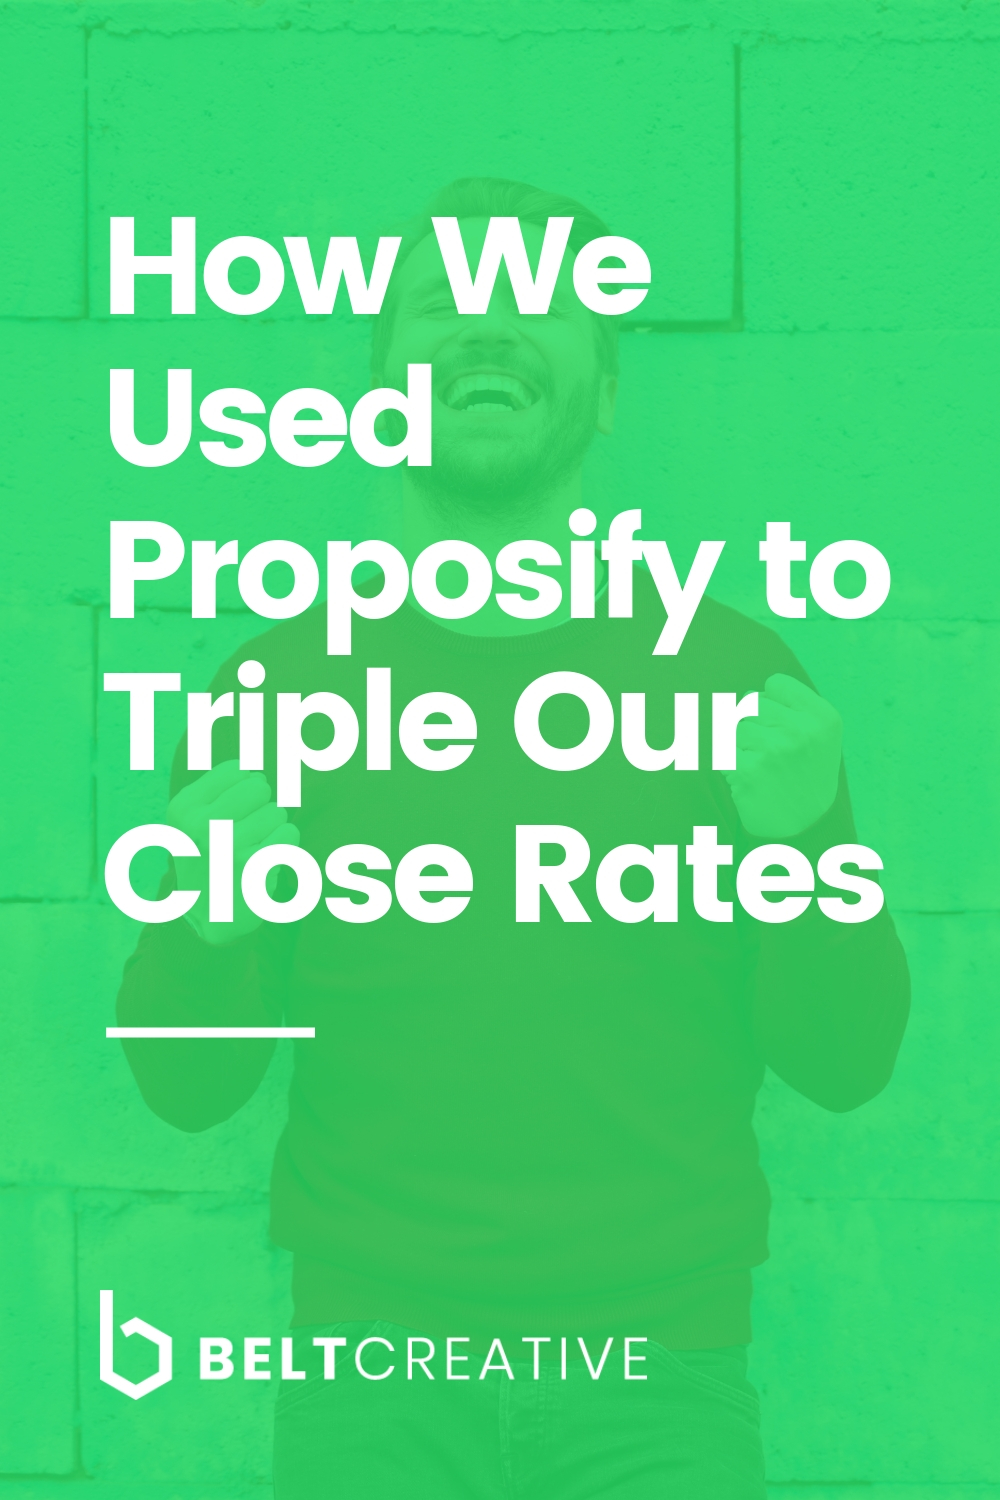 How We Used Proposify to Triple Our Close Rates.jpg